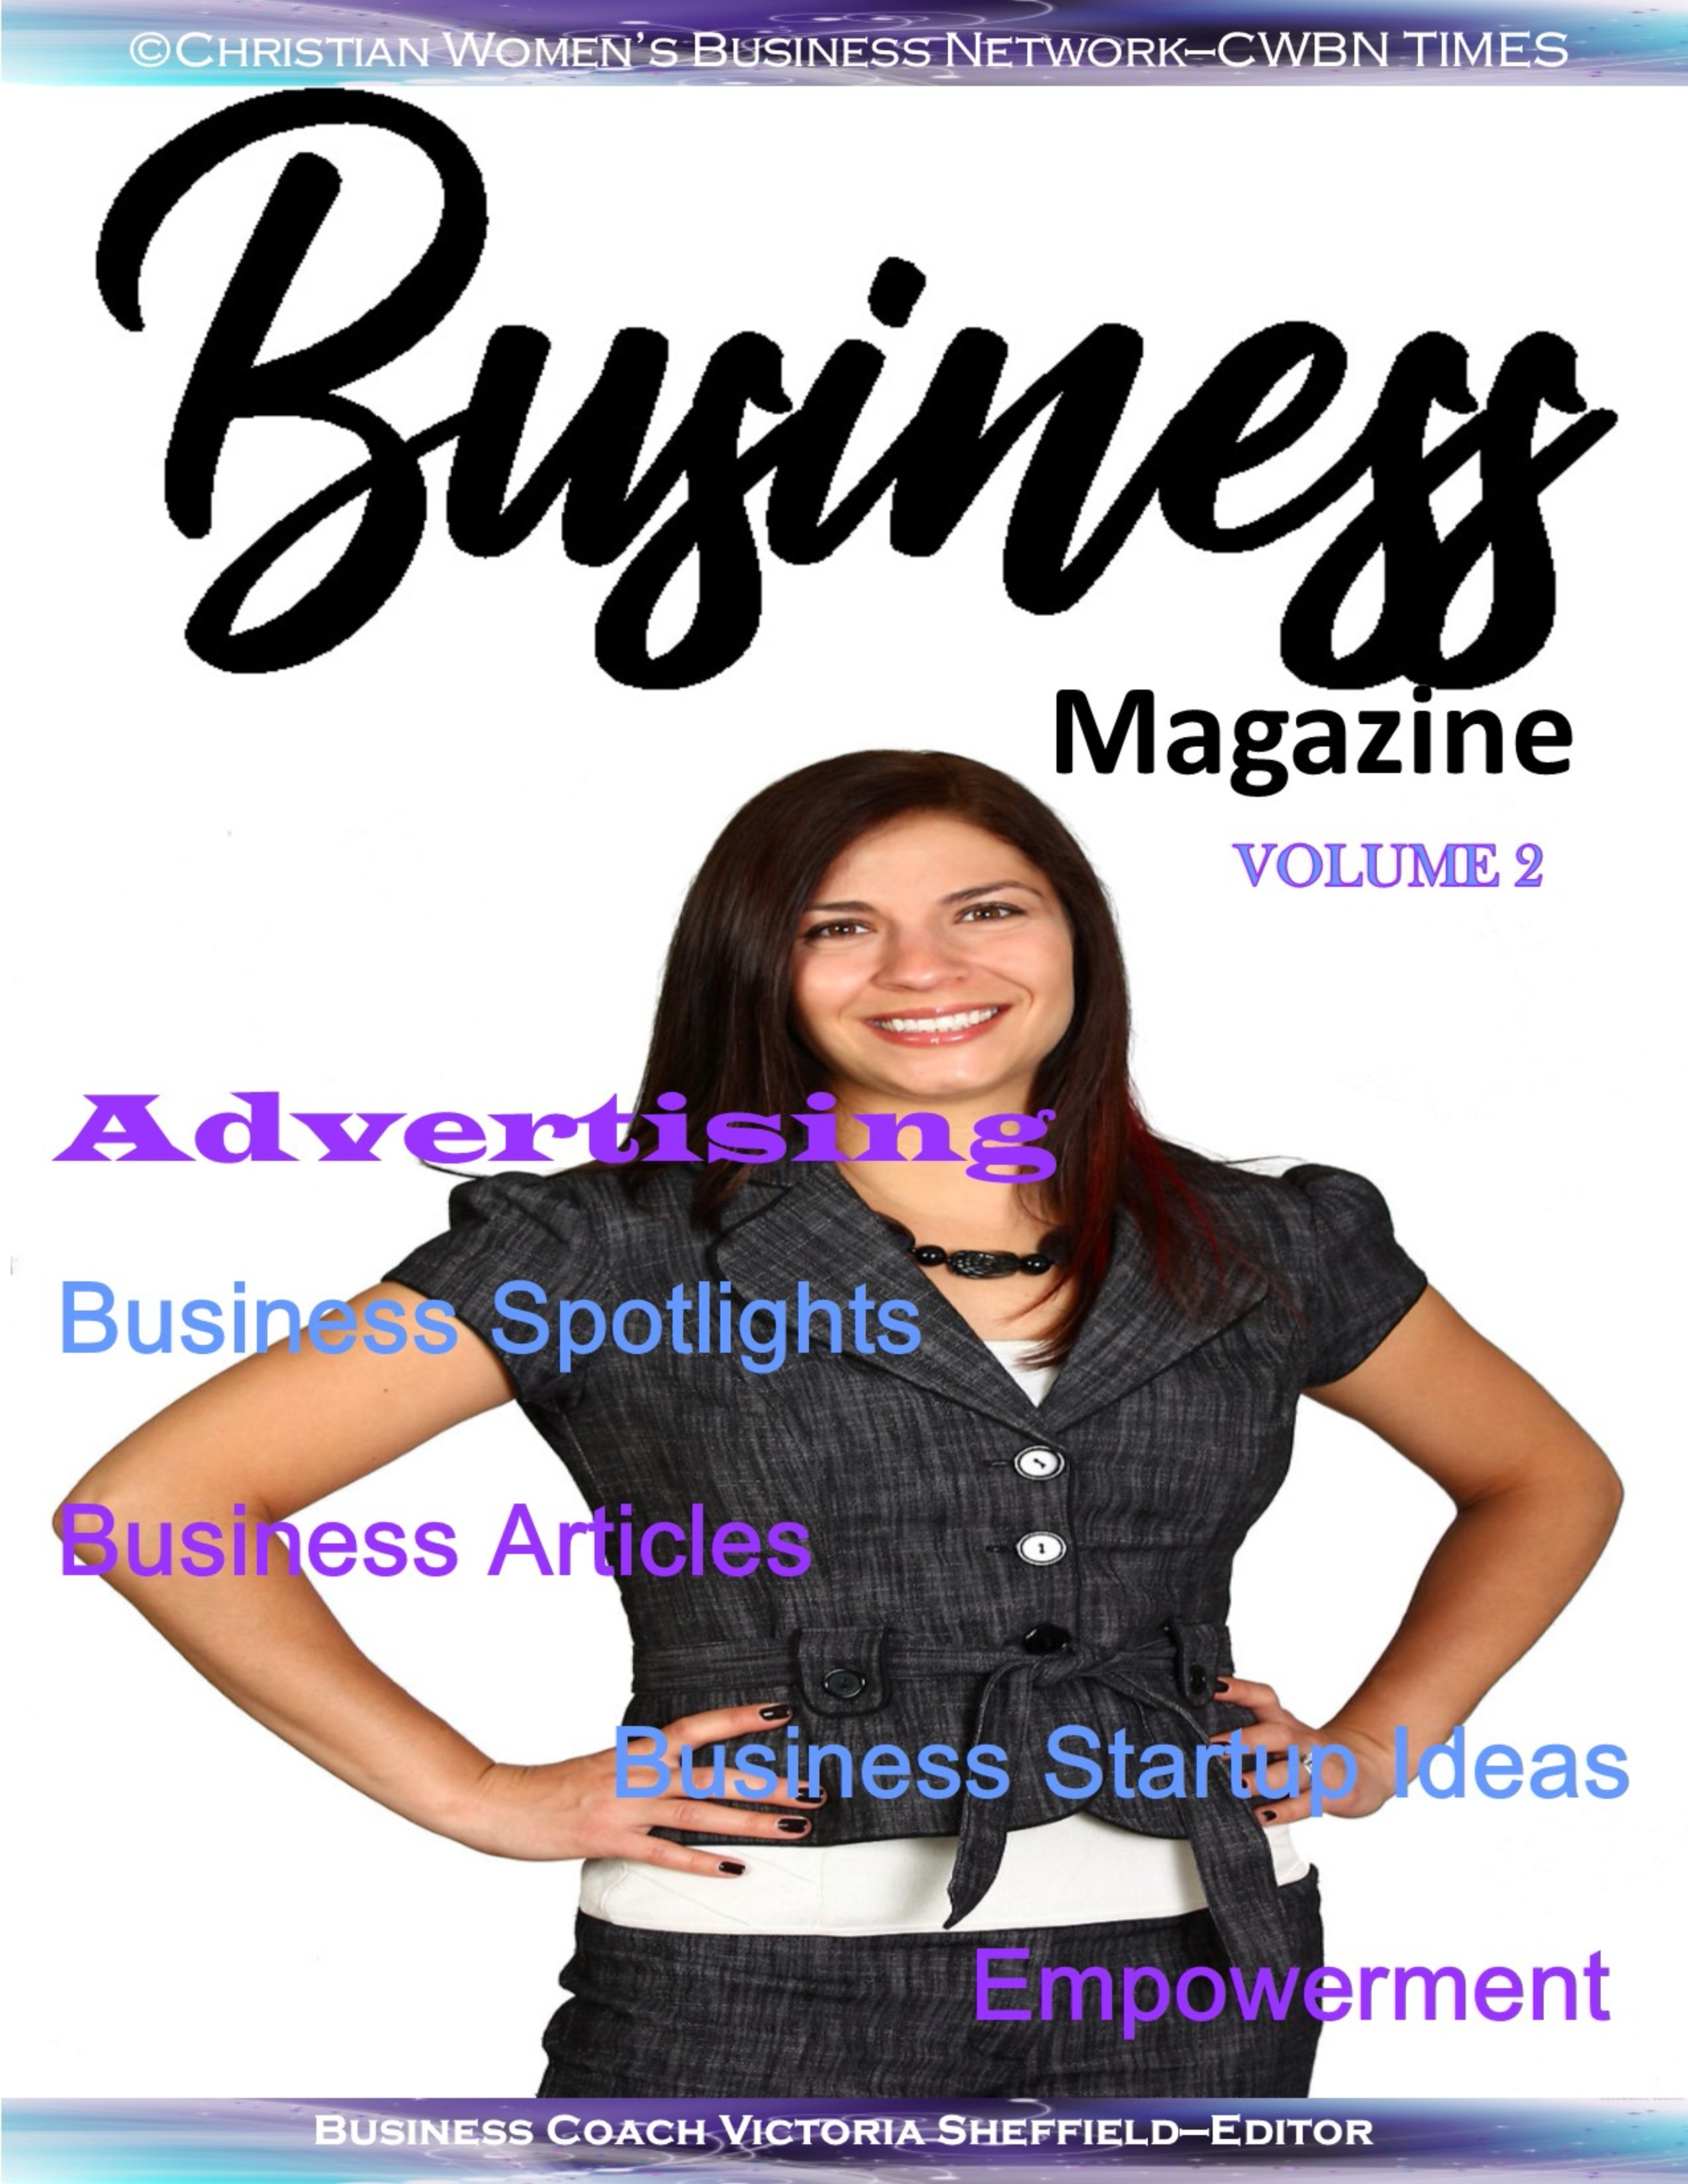 CWBN Times - Business Magazine - Volume 2